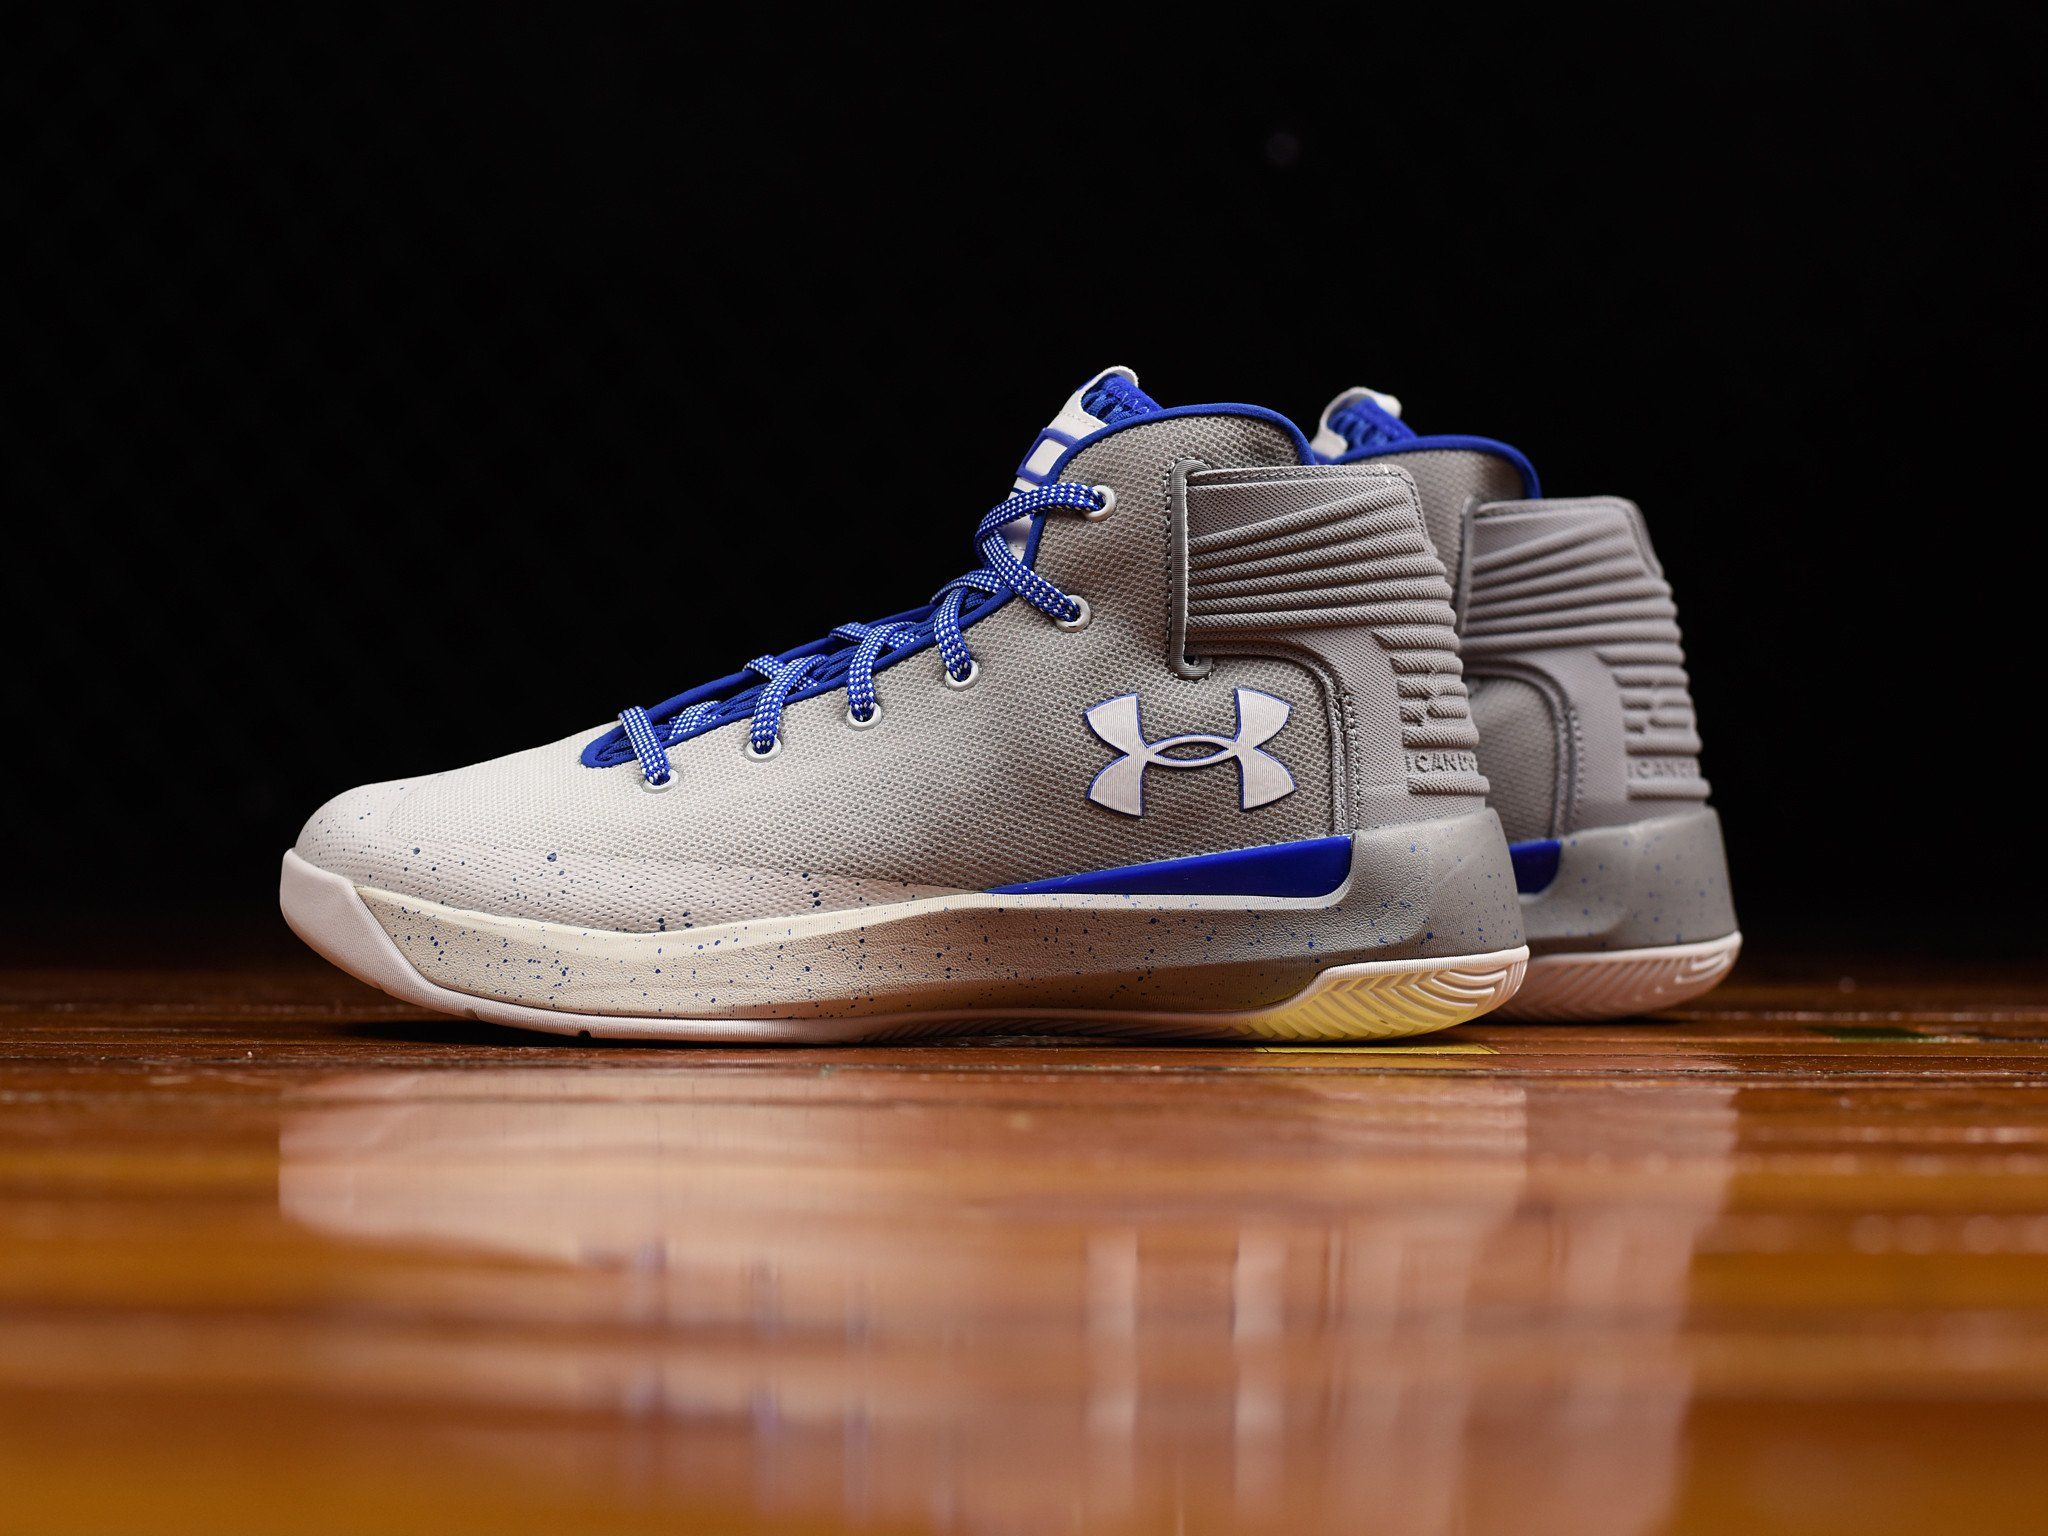 291d3c9b1 Men's Under Armour Curry 3ZERO [1298308-102] | Curry 3Zero | Curry ...